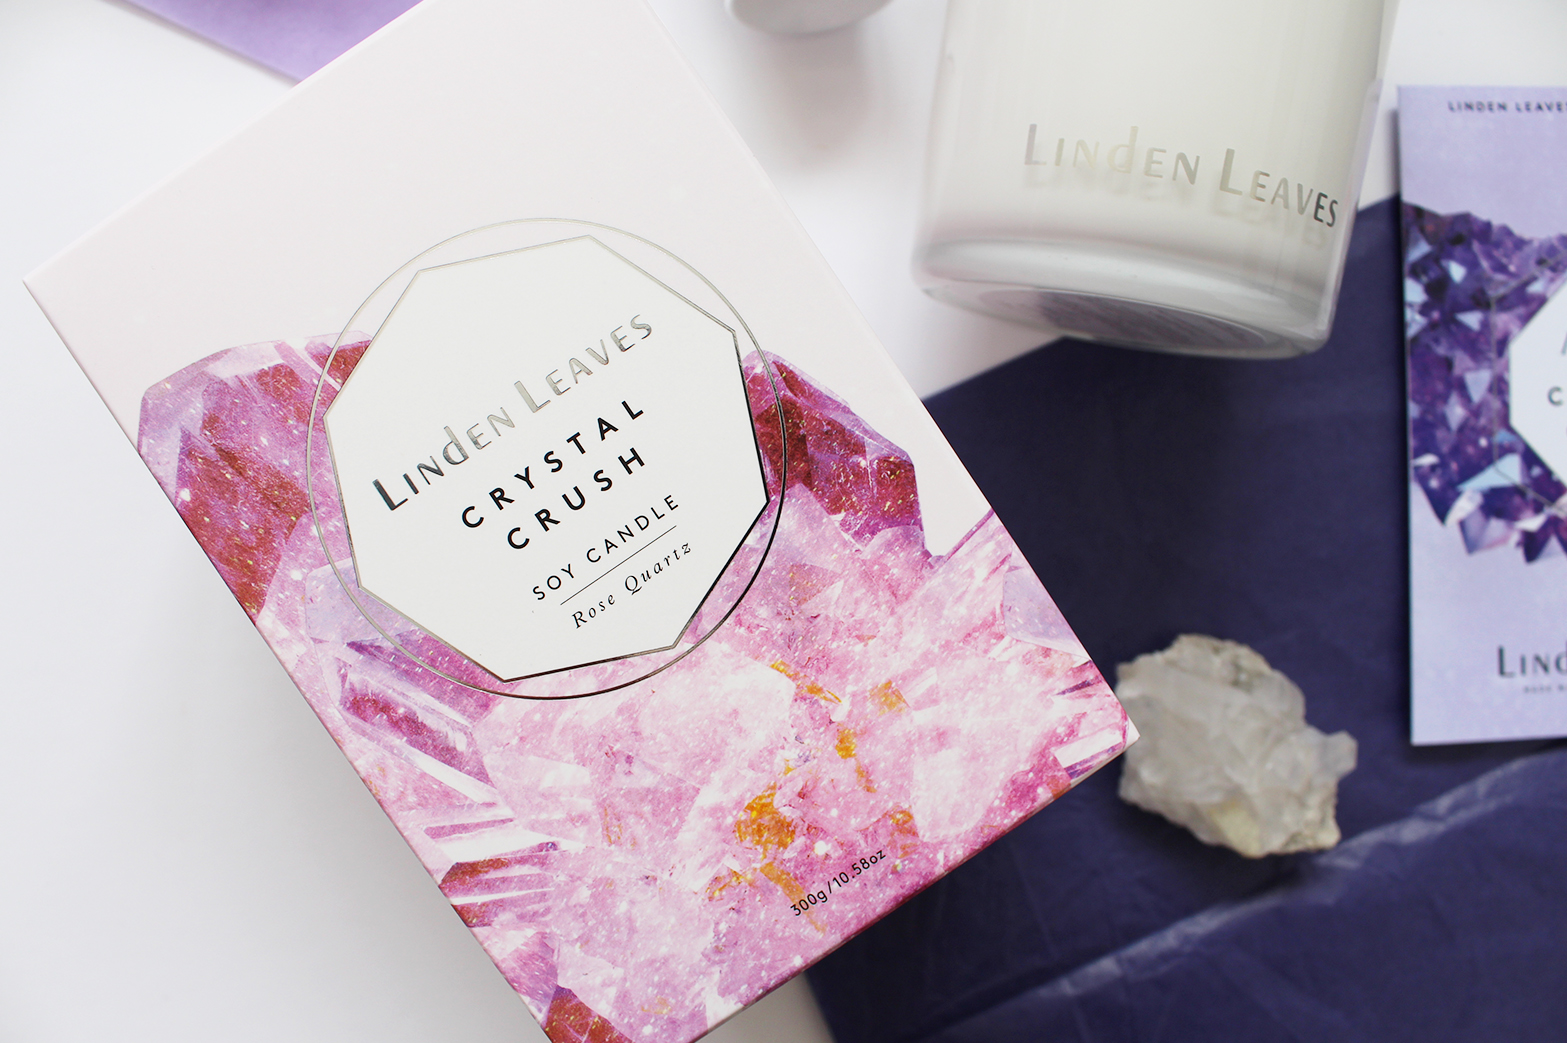 LINDEN LEAVES | Crystal Crush Christmas Collection - CassandraMyee